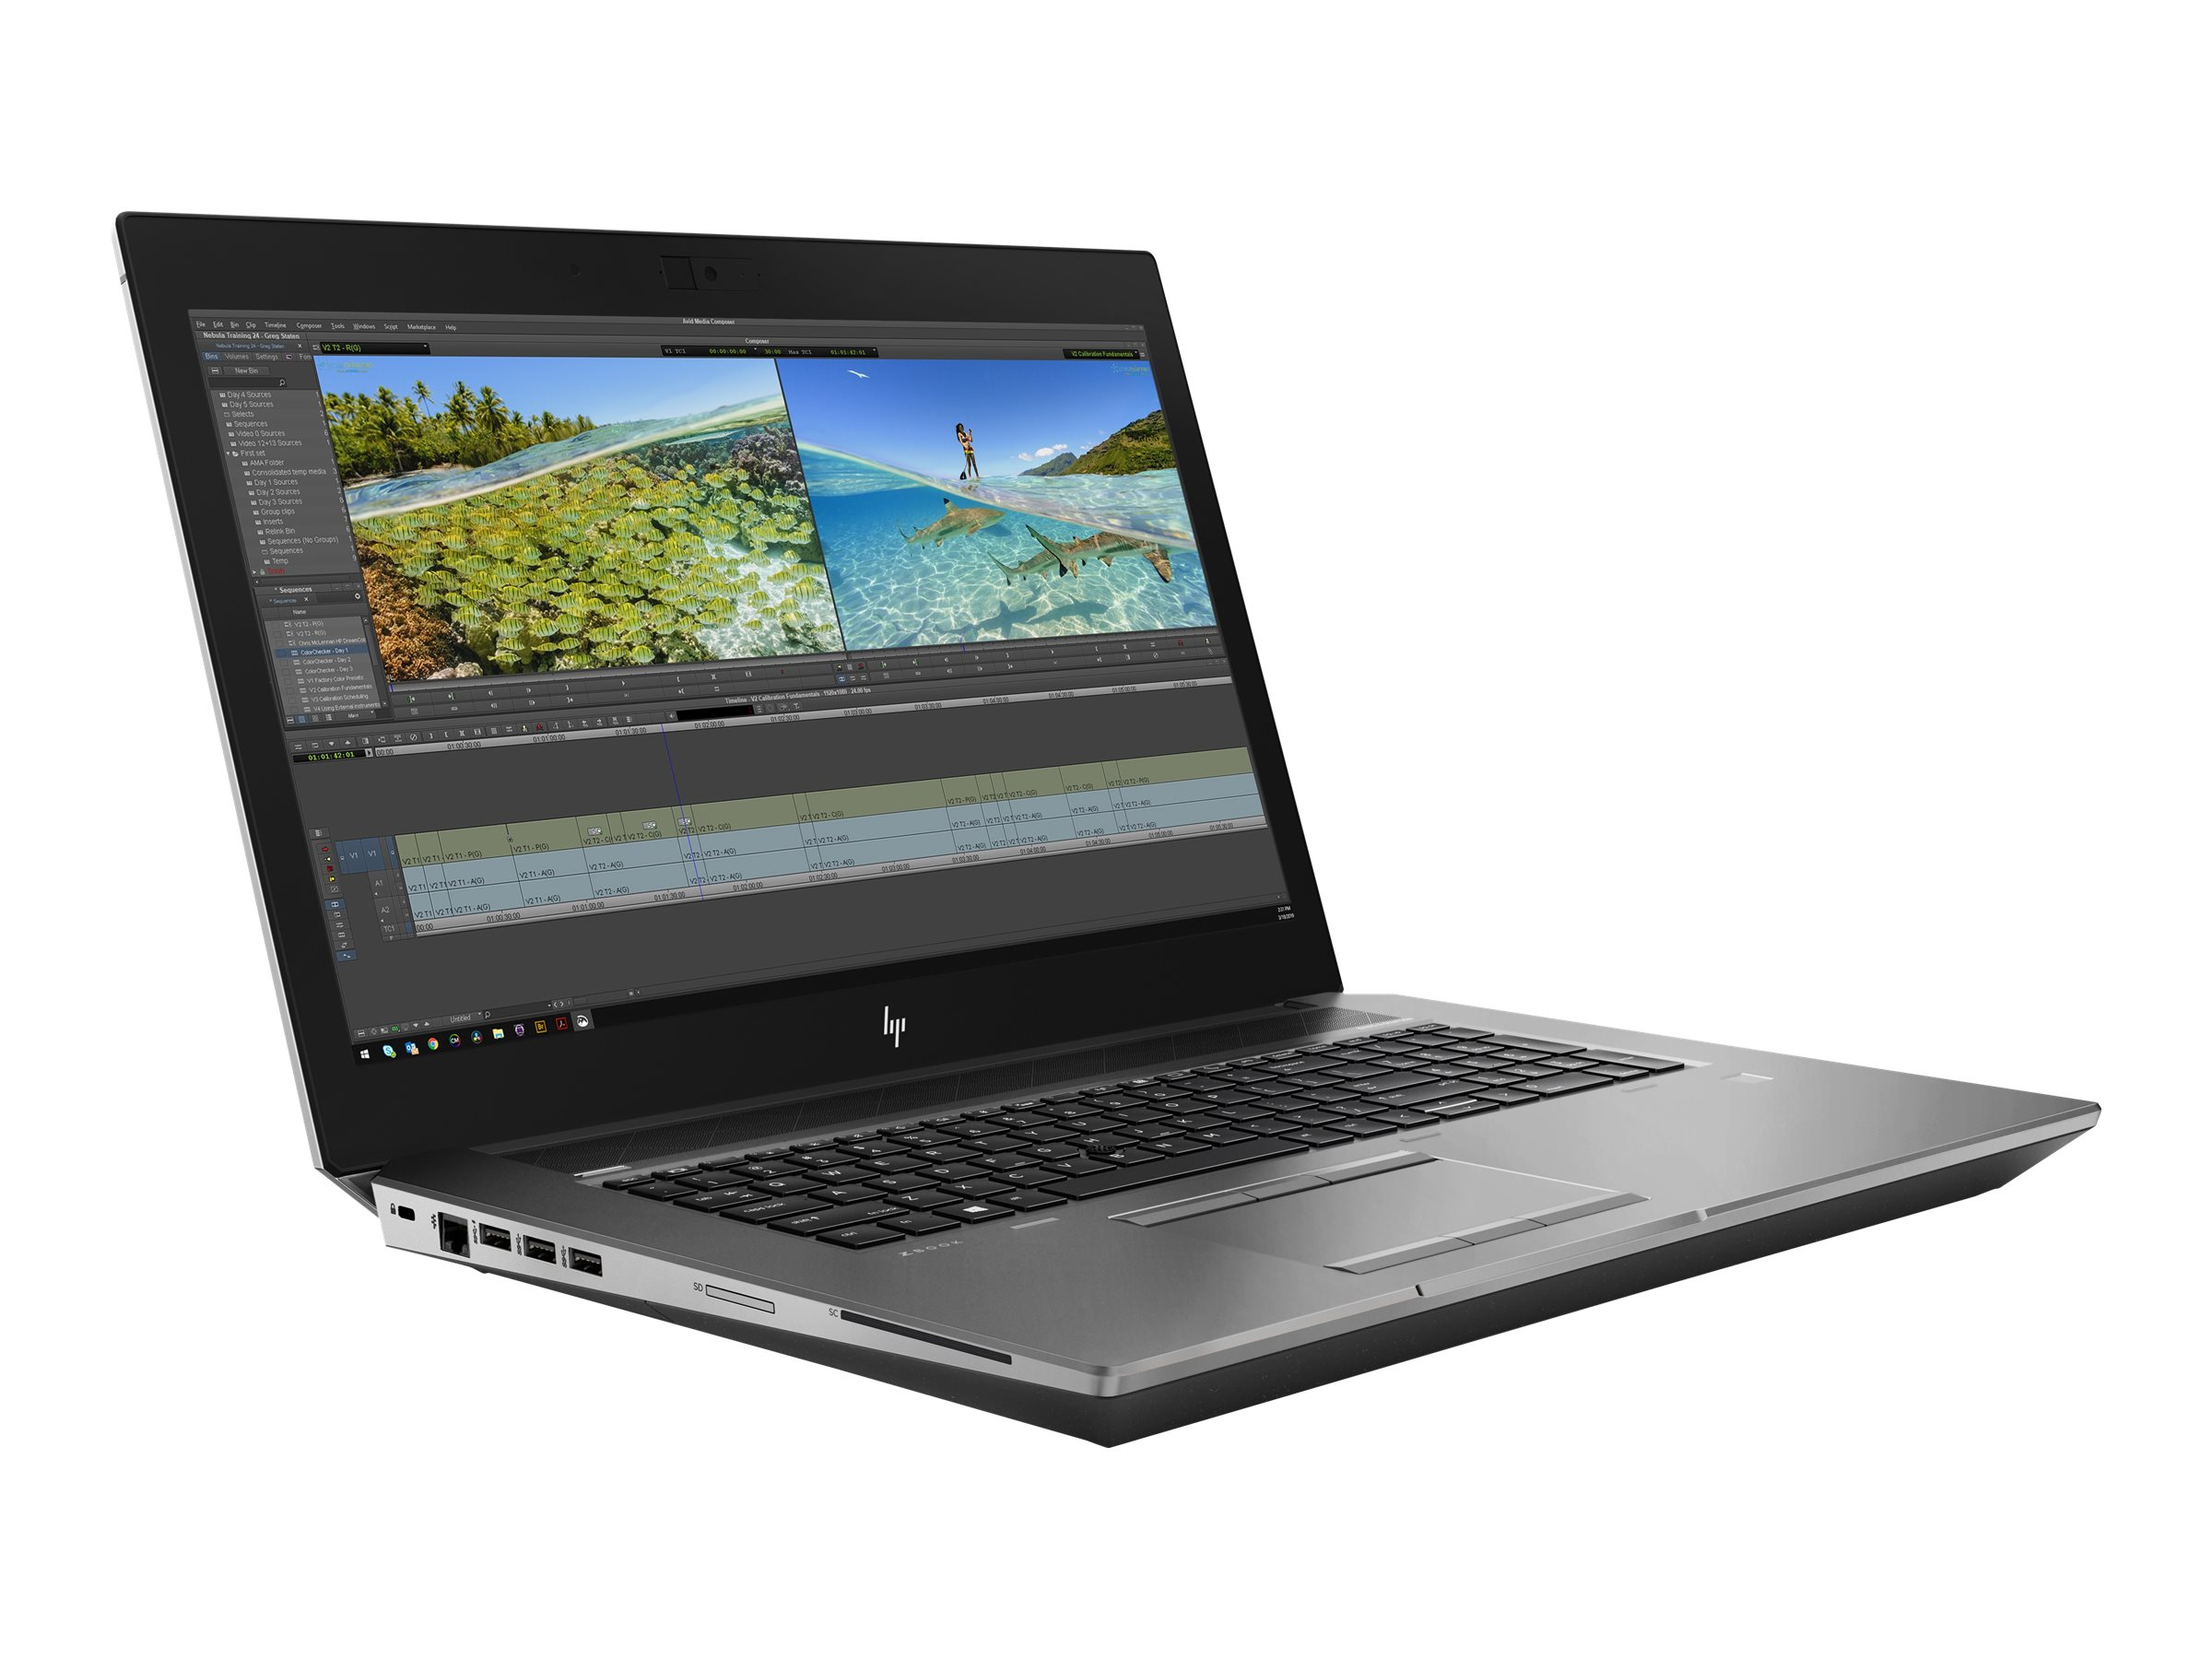 Hp zbook 17 g6 mobile workstation core i7 9750h 2 6 ghz win 10 pro 64 bit 8 gb ram 256 gb ssd 16 gb ssd cache nvme tlc 43 9 cm 17 3 ips 1920 x 1080 full hd 11782977 6tu95ea abd